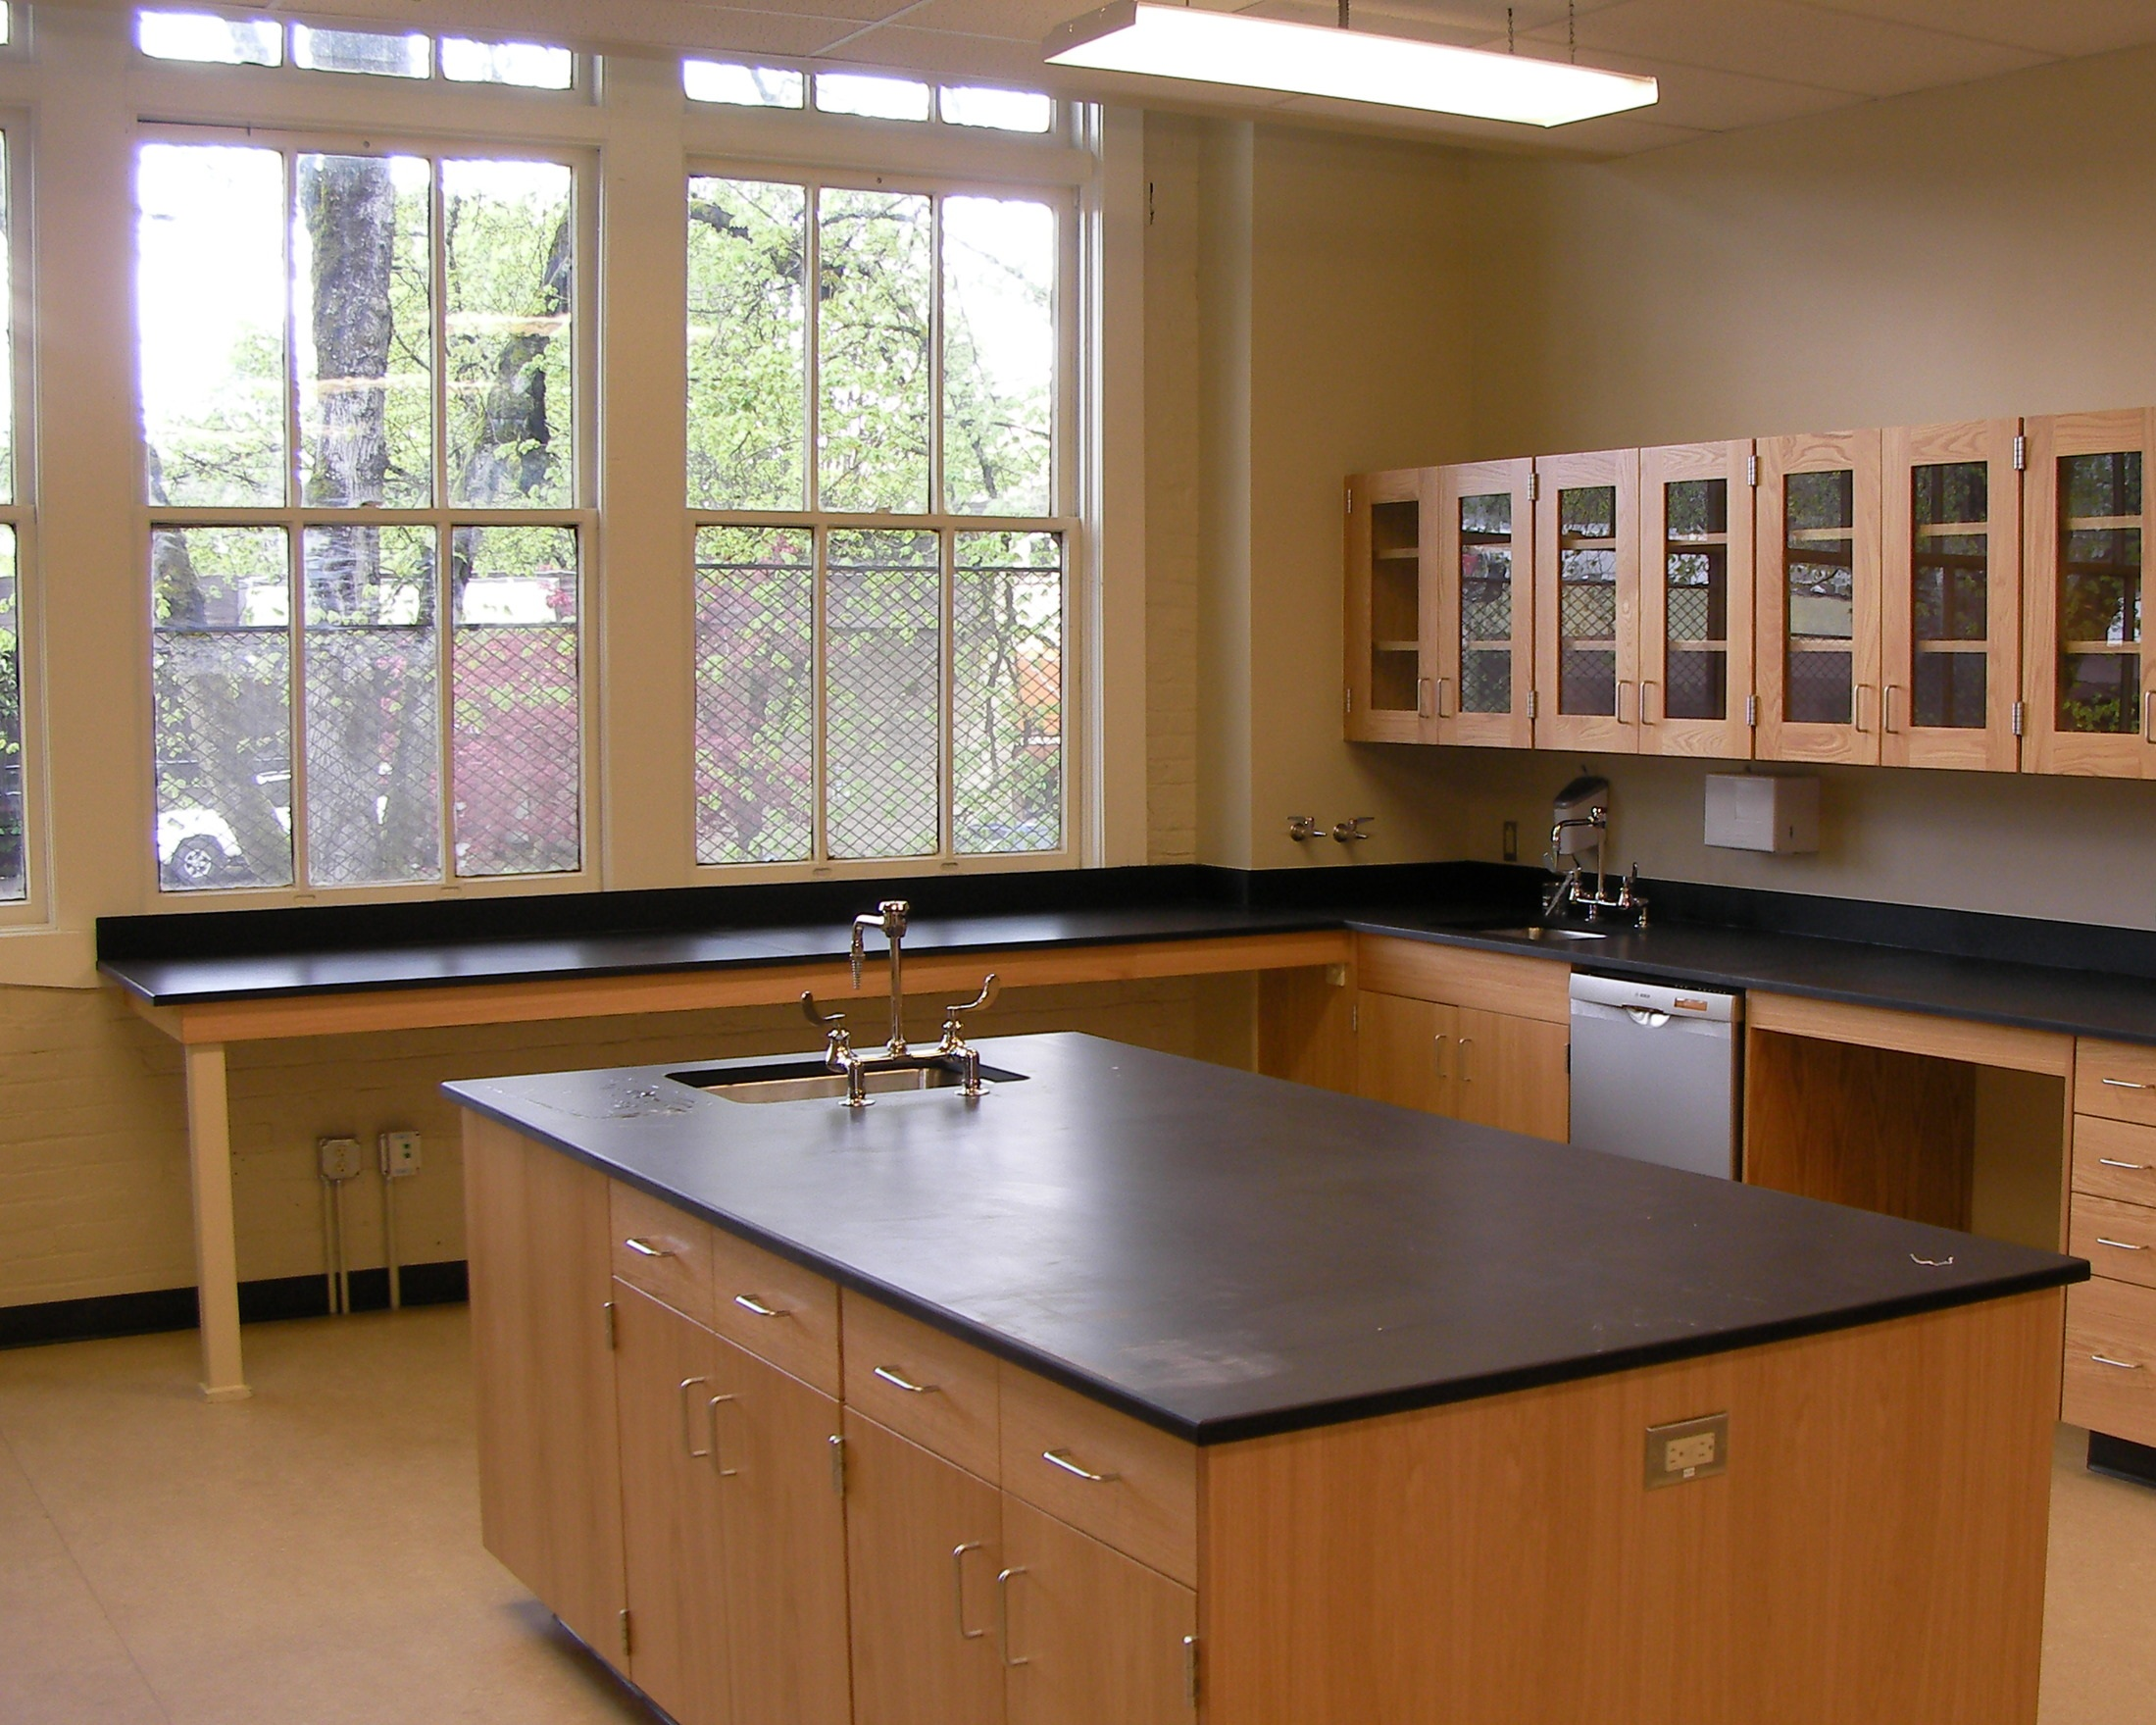 OSU -  CONSTRUCTION ENGINEERING RESEARCH LAB